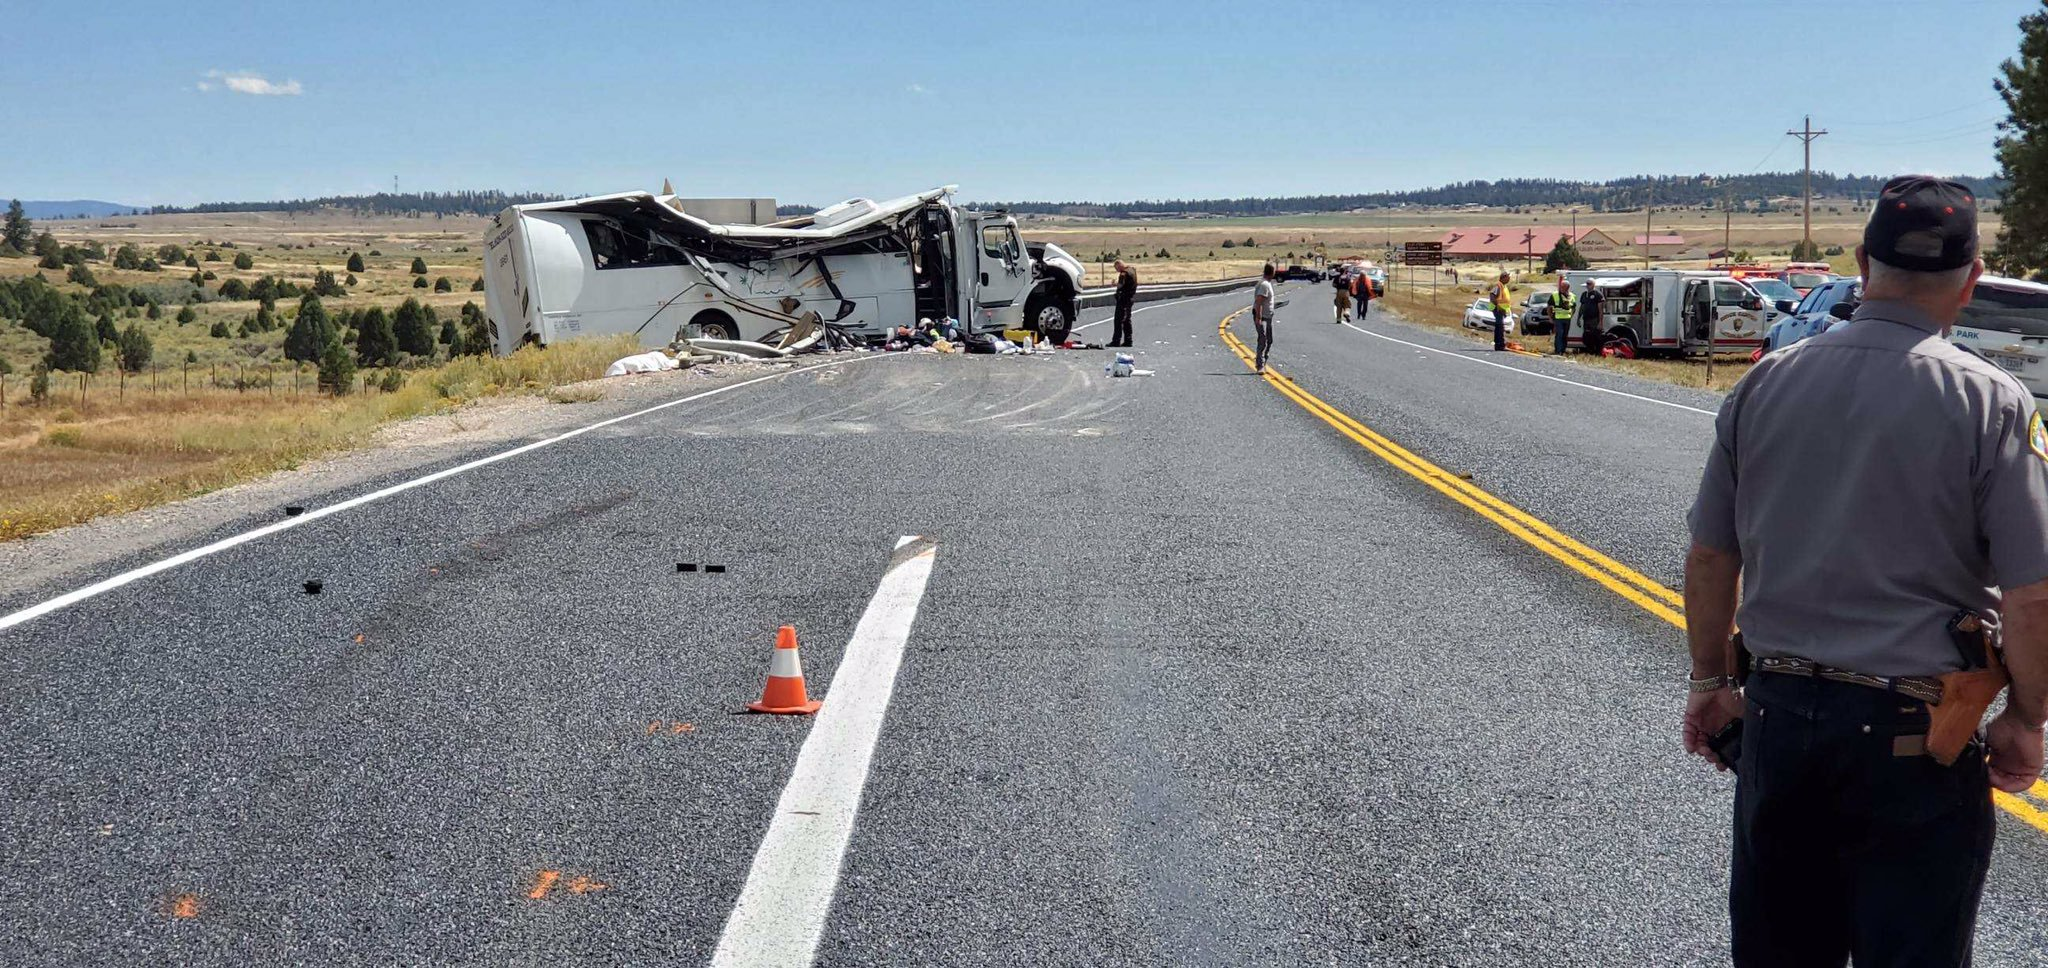 At least 4 dead, up to 15 critically hurt in Utah tour bus crash near Bryce Canyon National Park